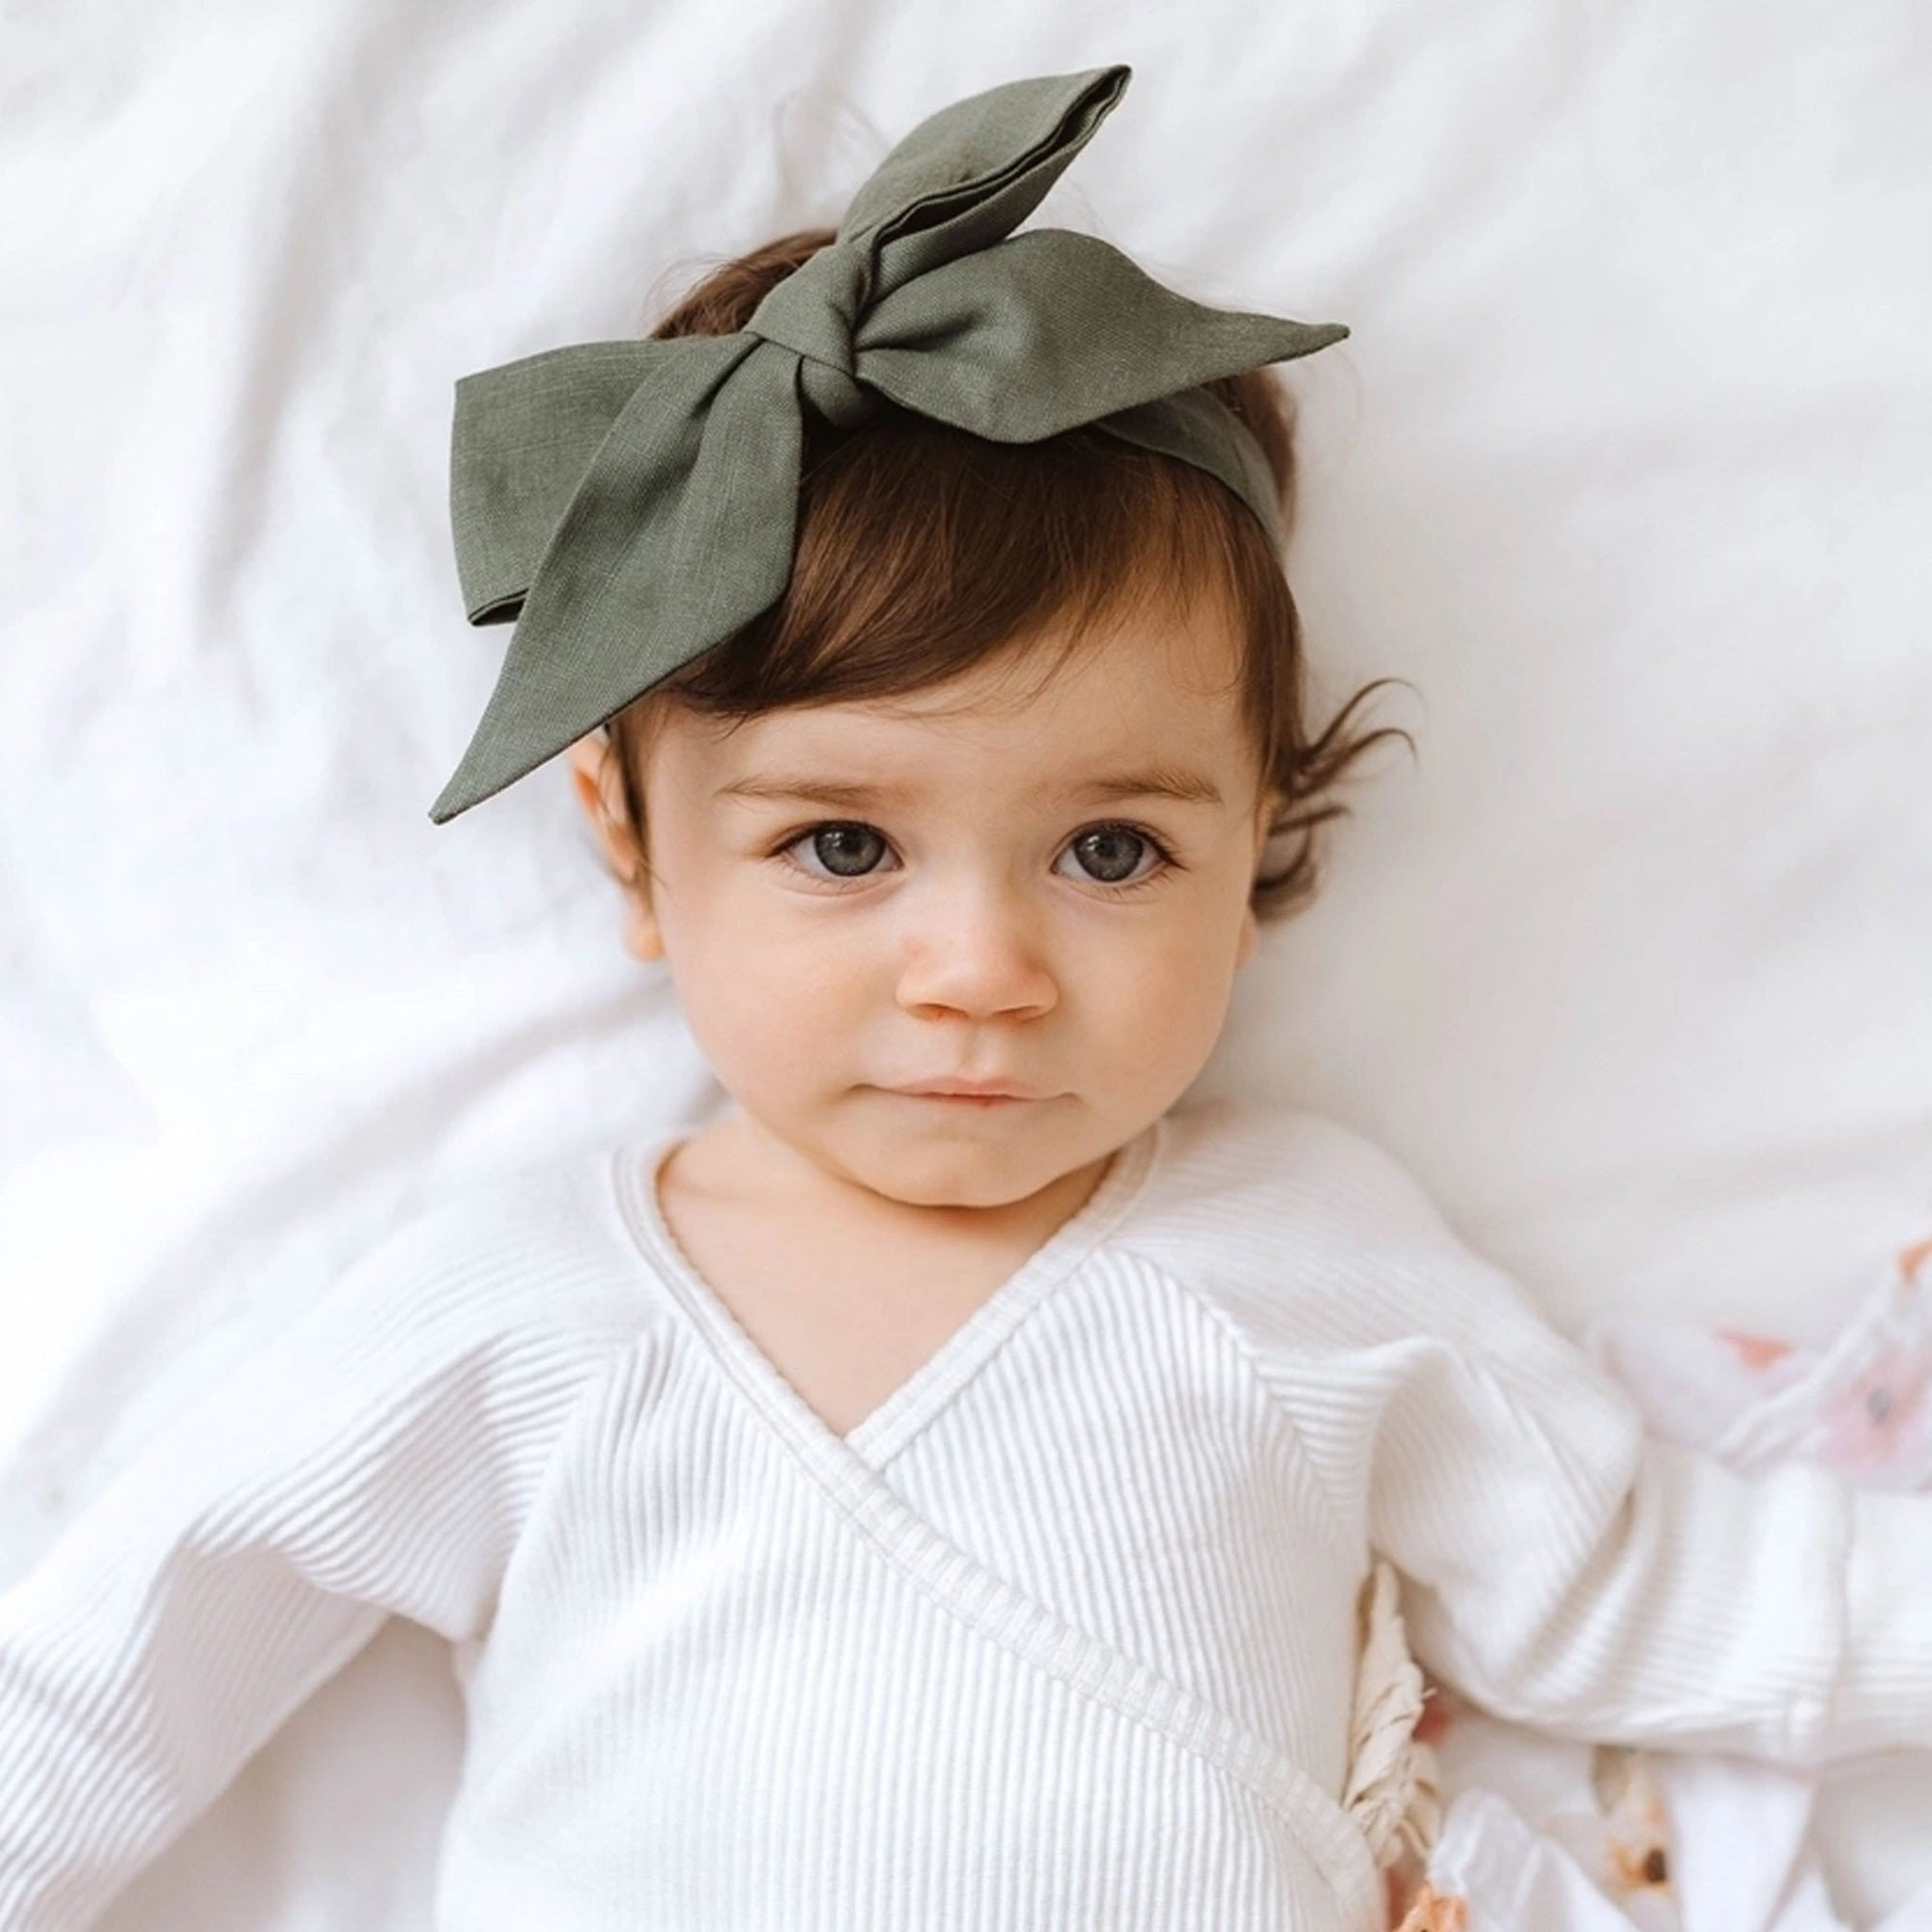 Snuggle Hunny Kids Linen Bow Pre-Tied Headband Wrap - Dusty Olive